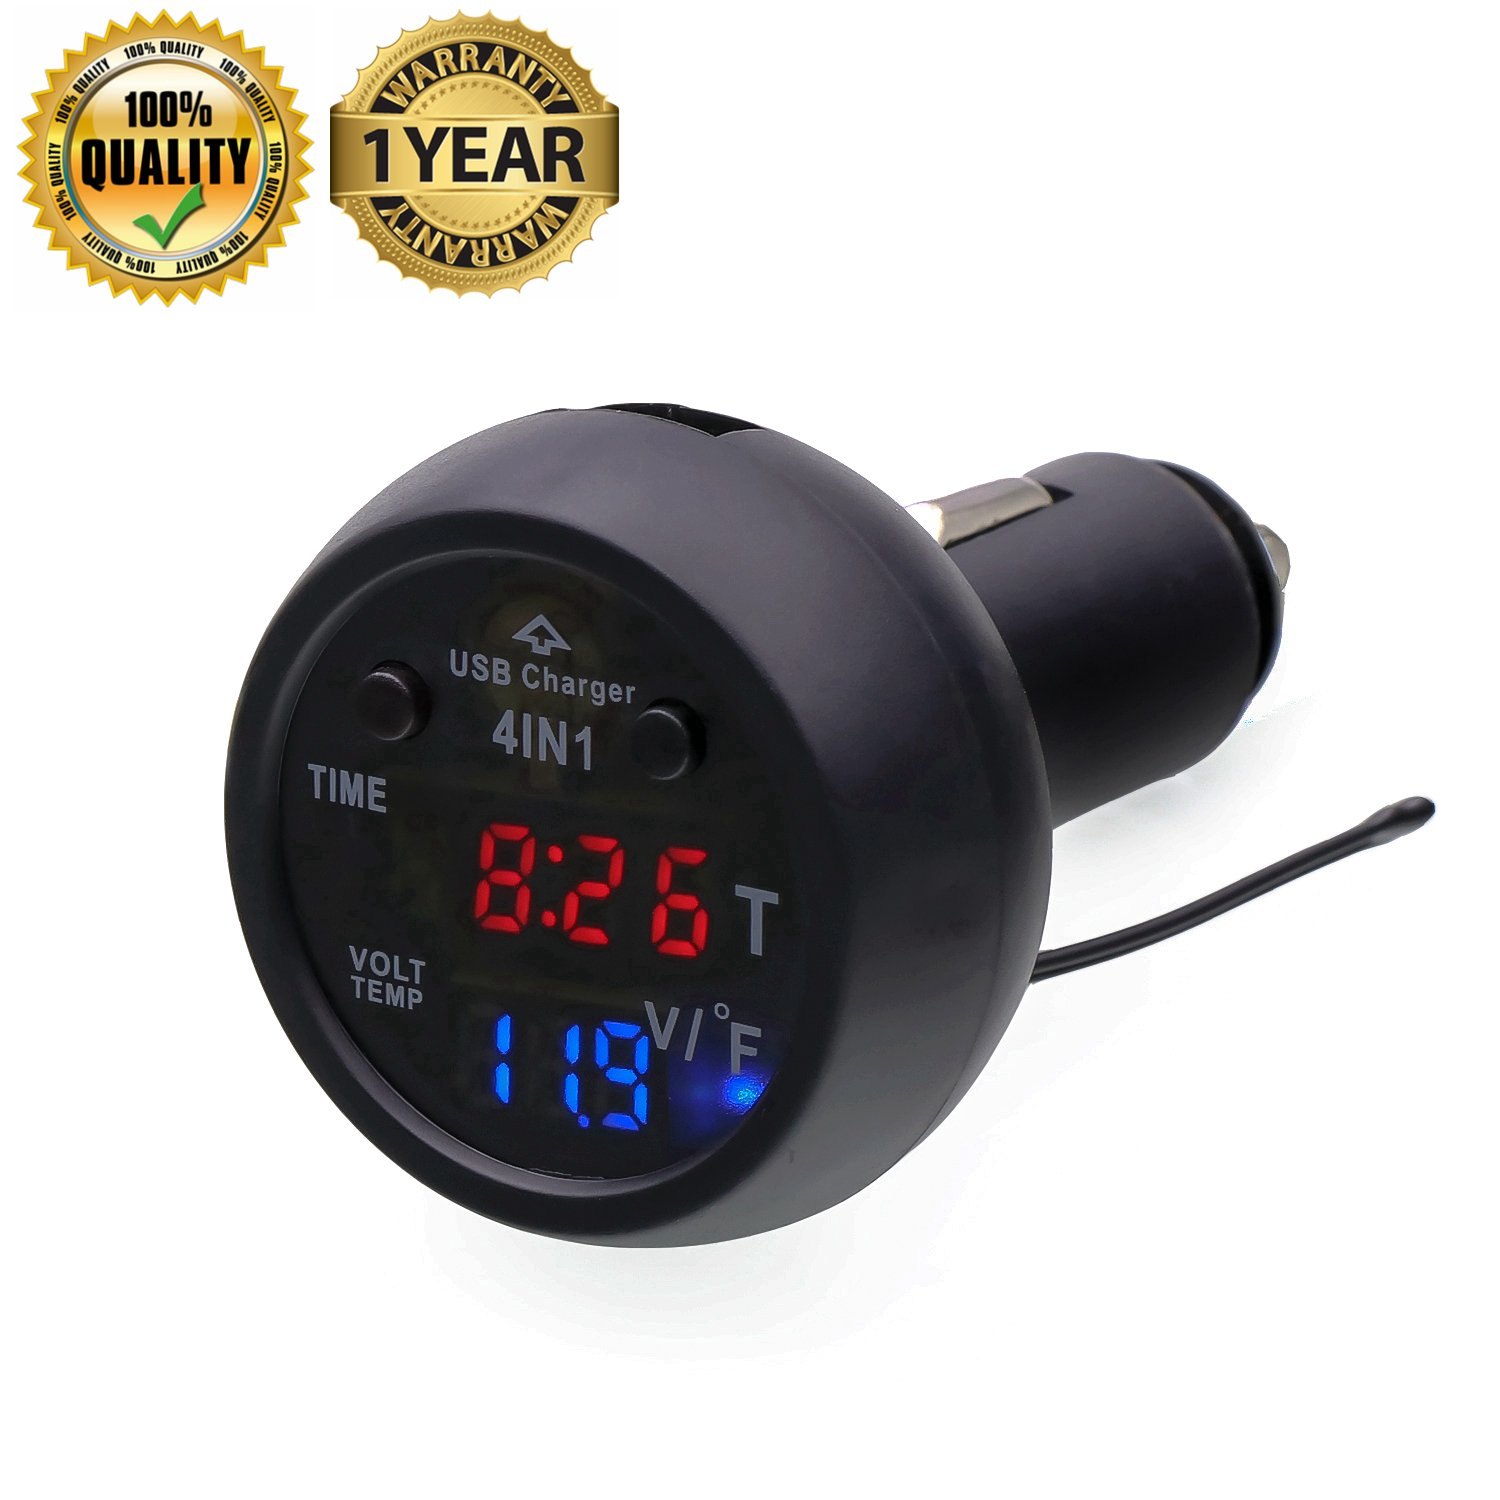 High Quality Car Usb Charger 21athermometerbattery Monitor Battery For 12v Voltmetercalendar